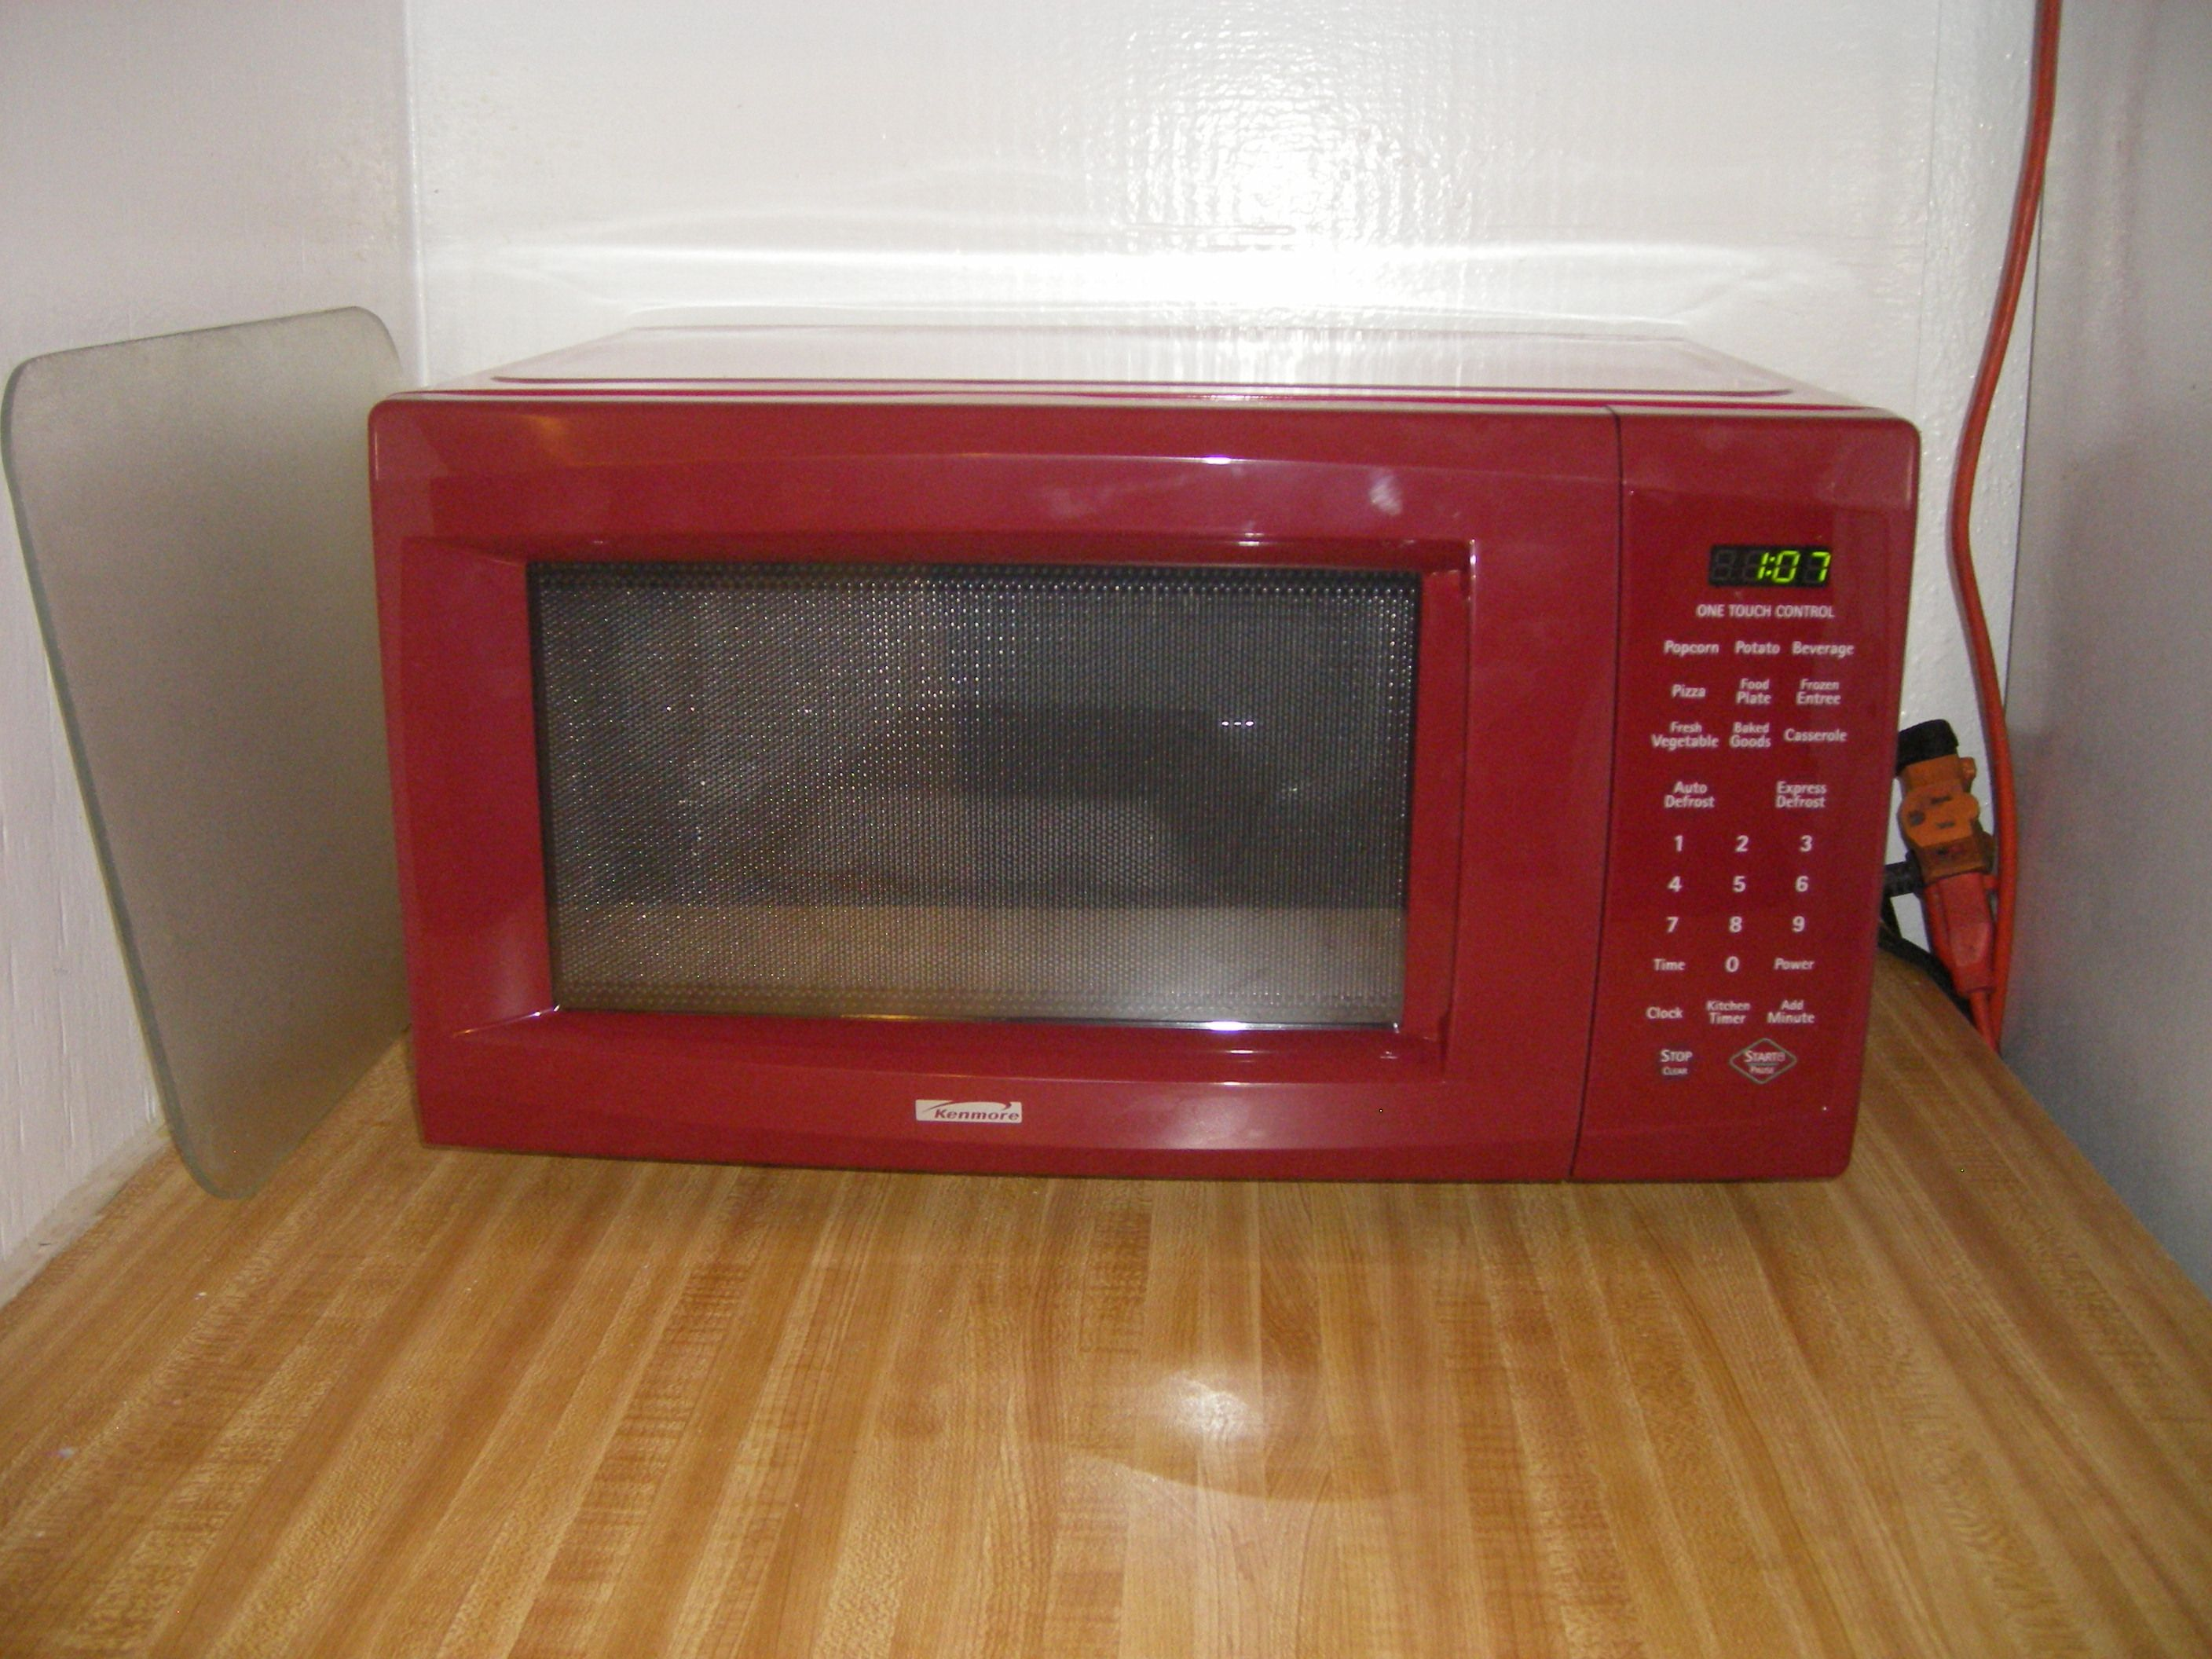 Shop the best selection of Kmart microwaves repair parts and accessories at Sears PartsDirect. Find replacement parts for any Kmart microwaves repair project. Kmart Microwave Parts We carry replacement parts, repair parts and accessories for 0 Kmart MAYTAG OVEN.